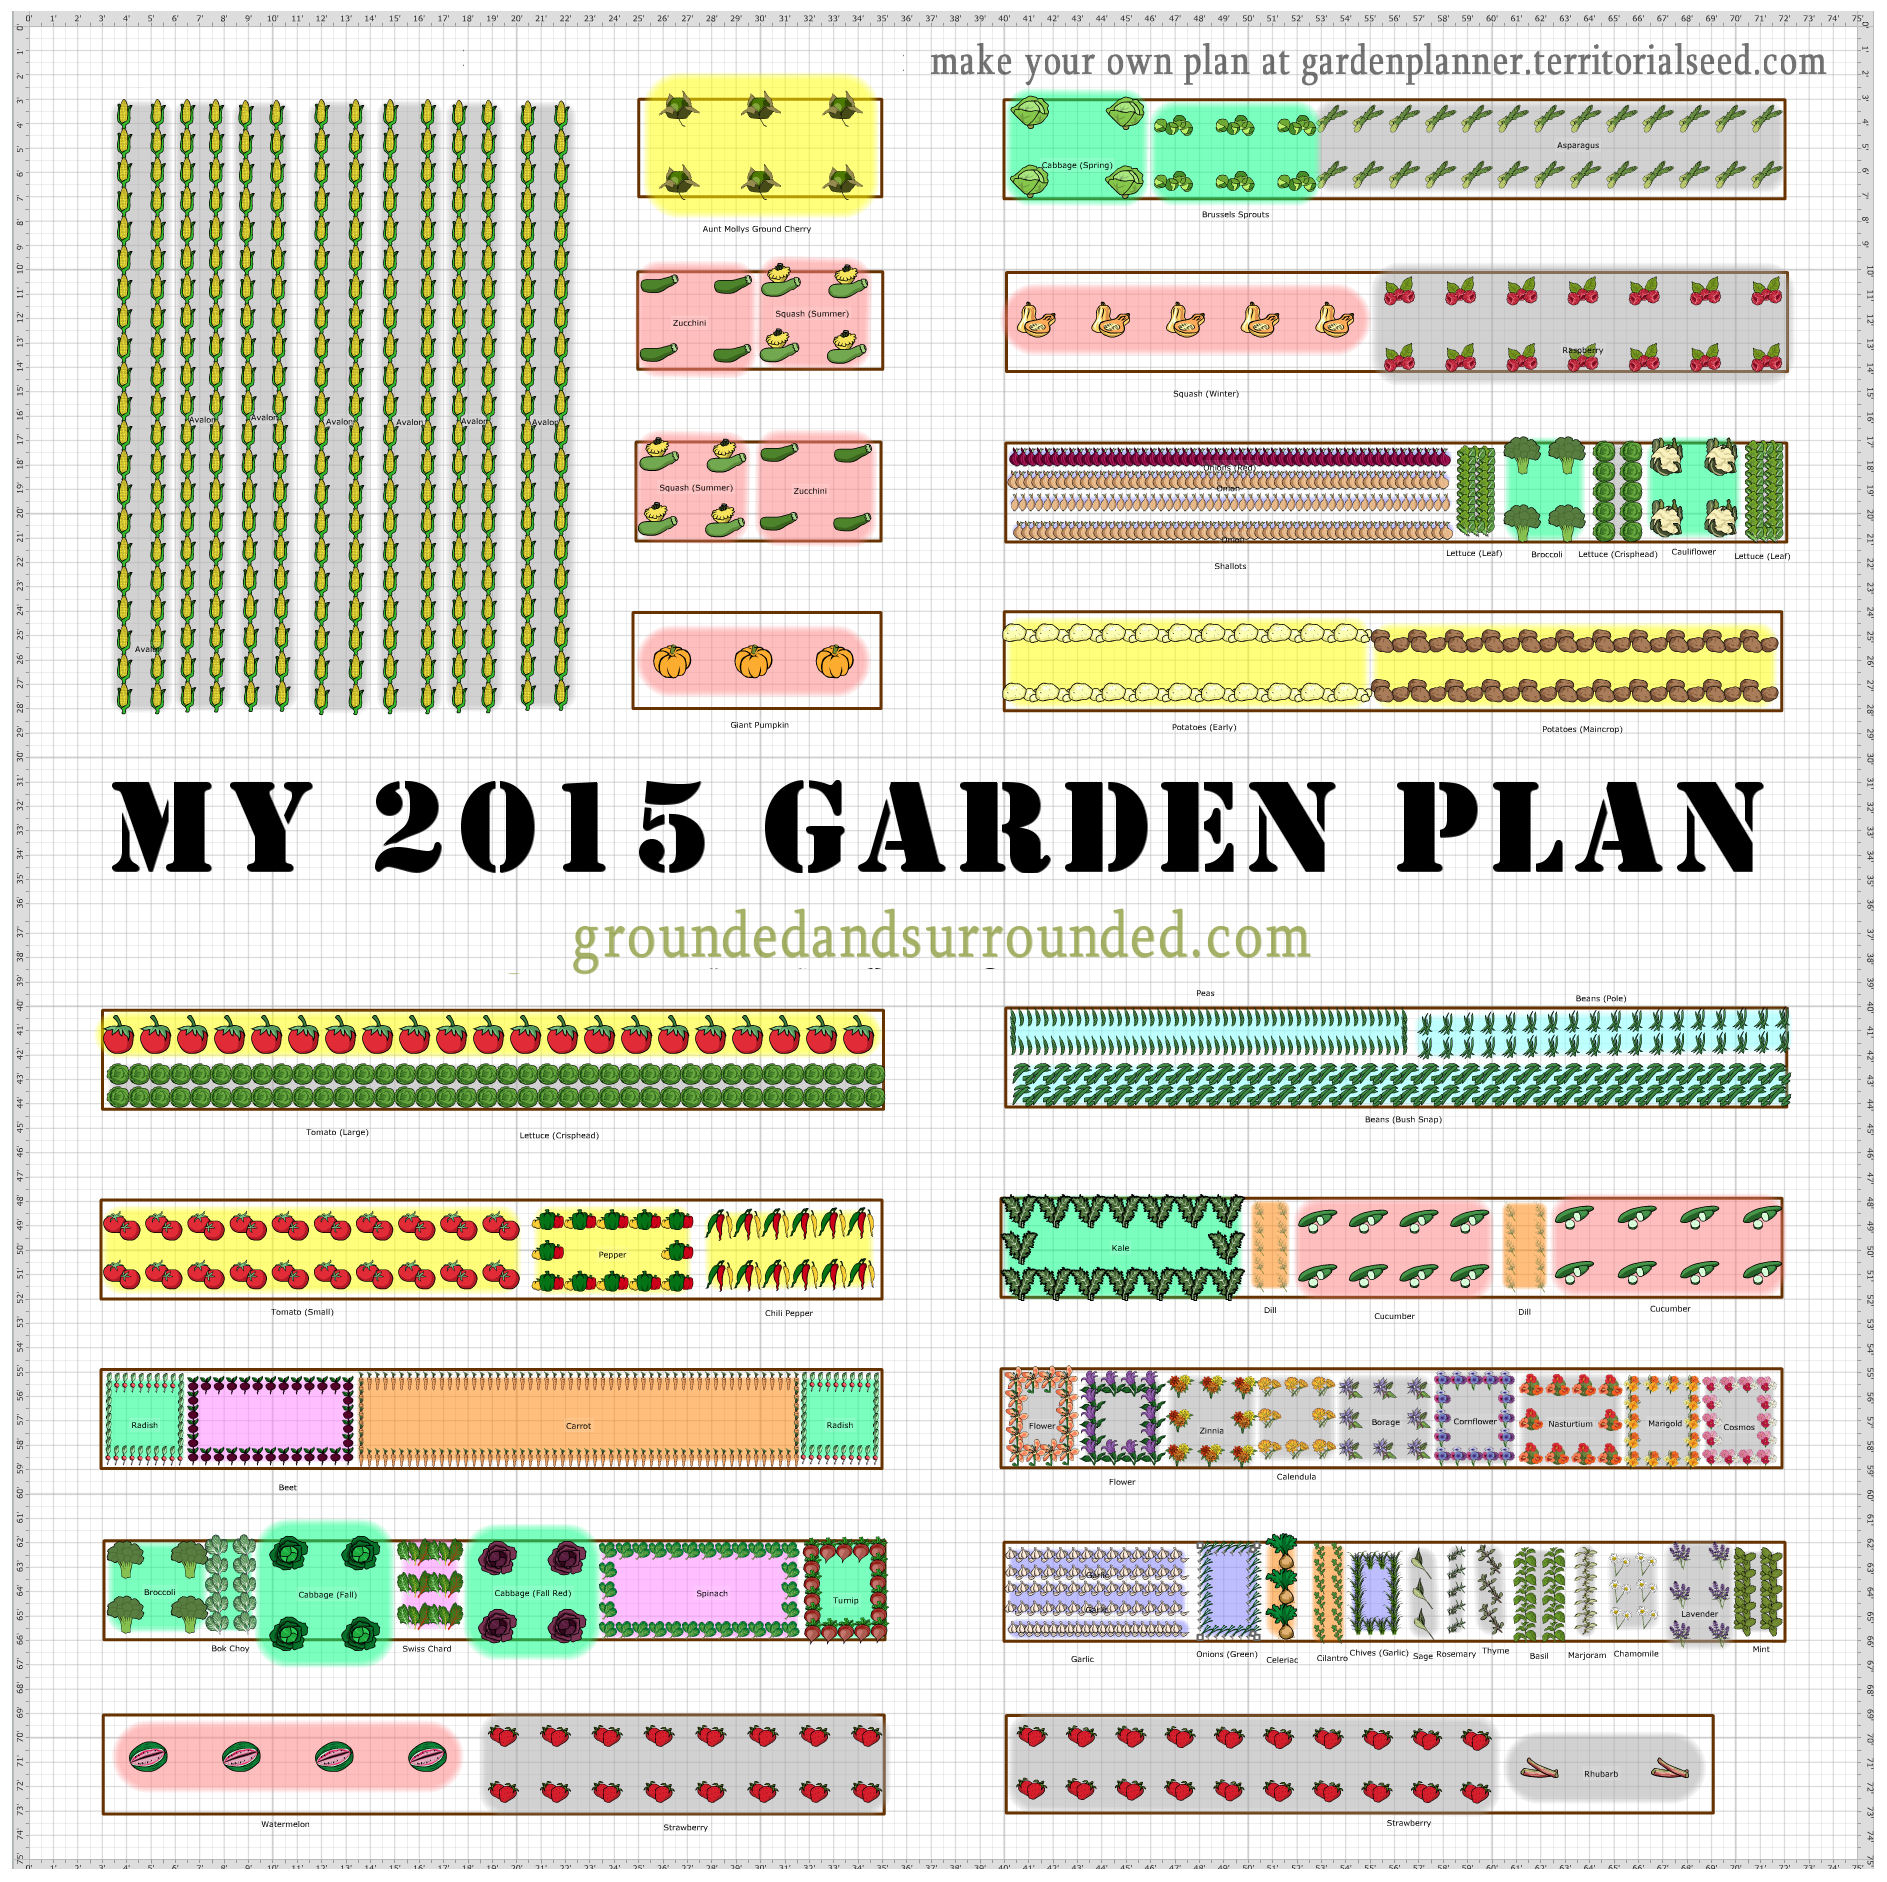 My 5 000 sq ft vegetable garden plan grounded surrounded for Garden layouts designs